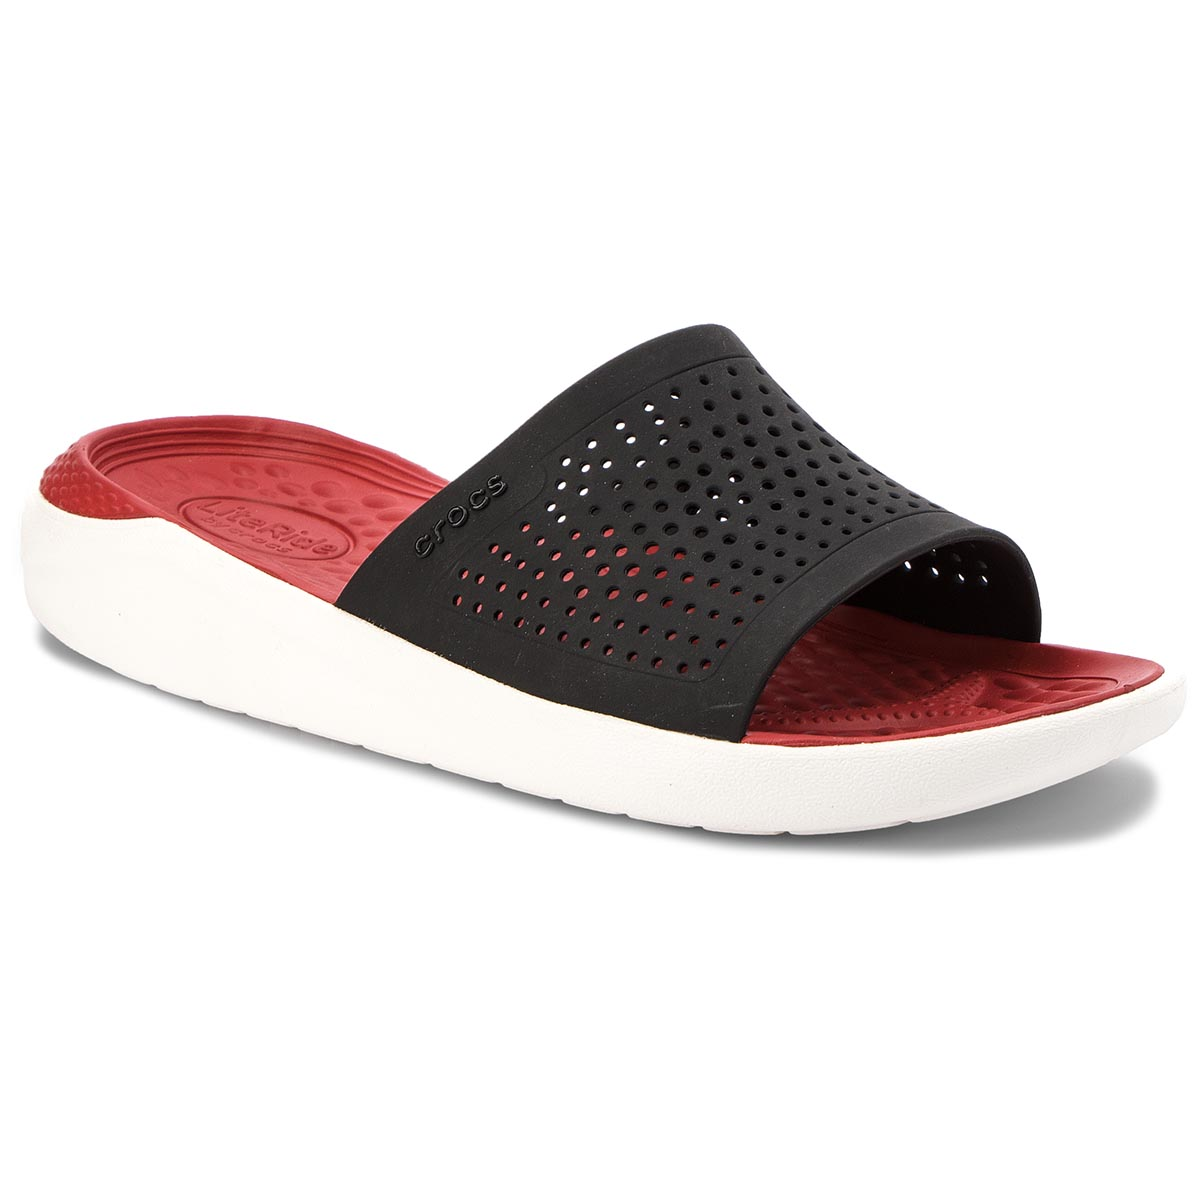 Klapki CROCS - Literide Slide 205183 Black/White